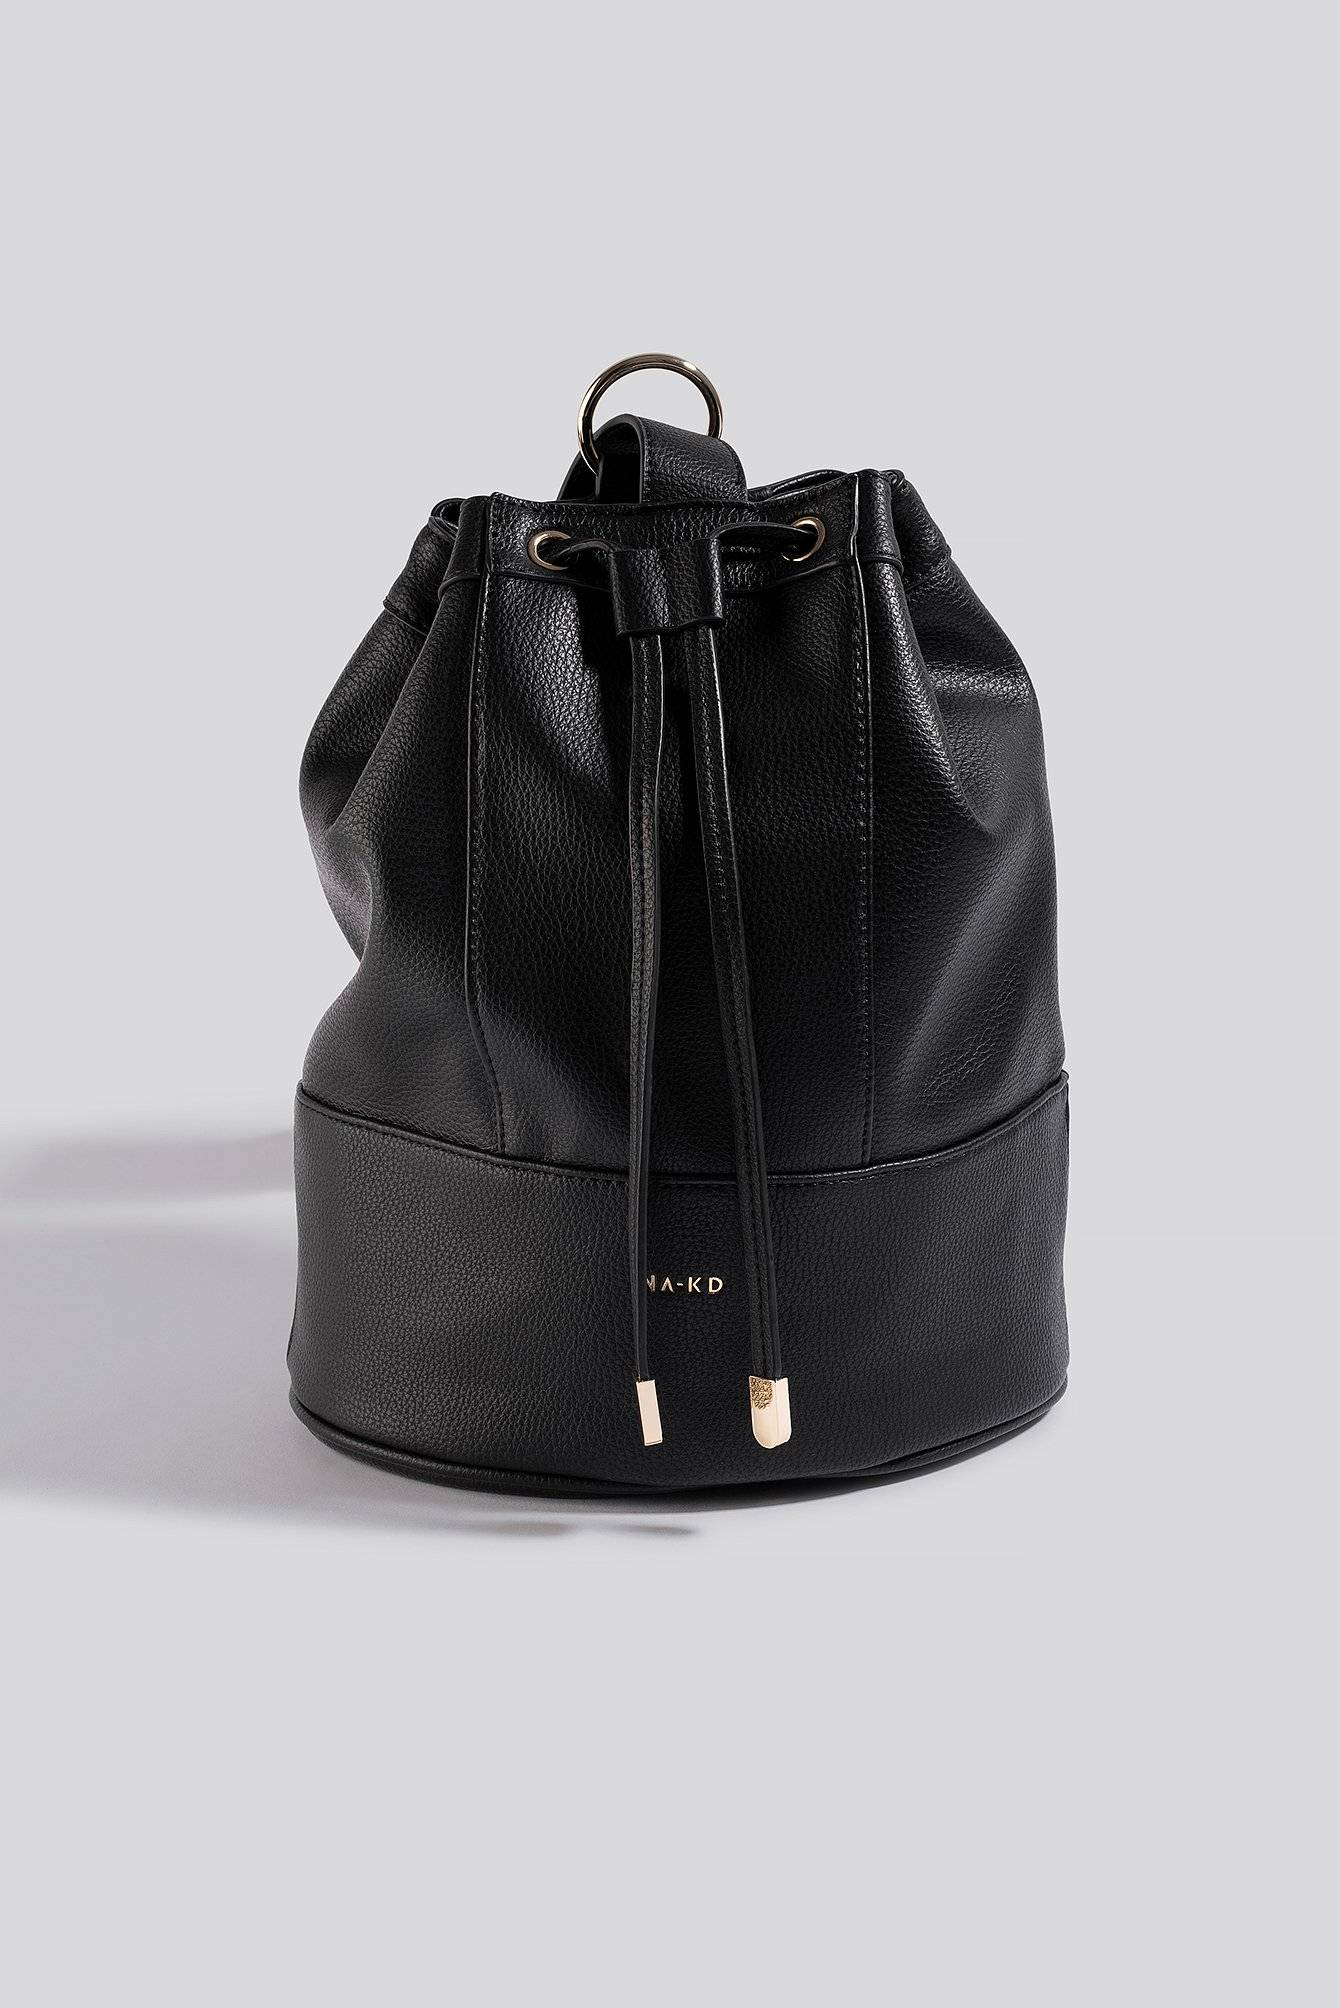 NA-KD Accessories One Strap Bucket Bag - Black  - Size: One Size